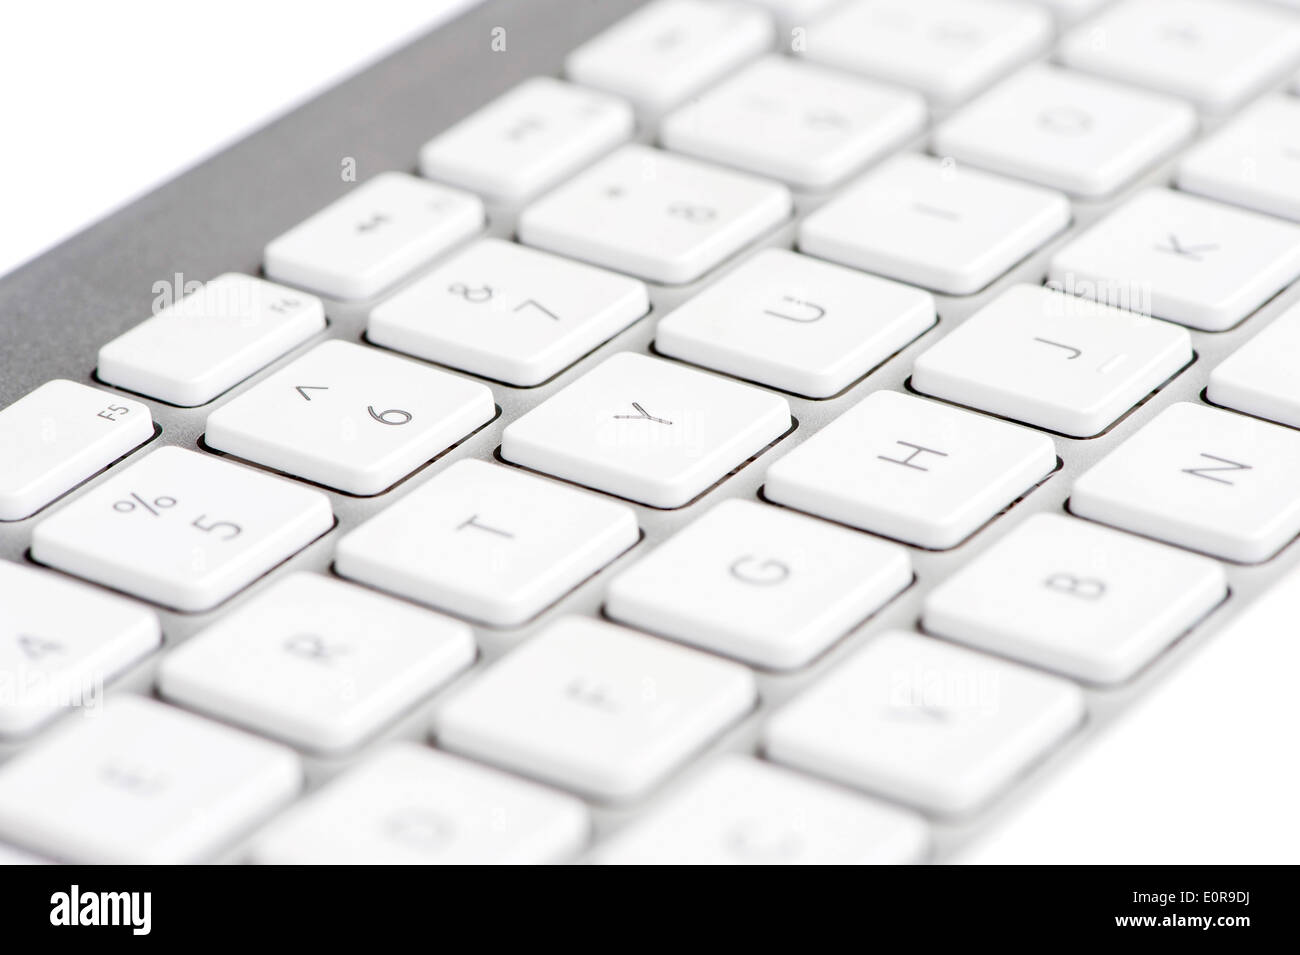 Apple mac white Keyboard focused on the letter Y - Stock Image